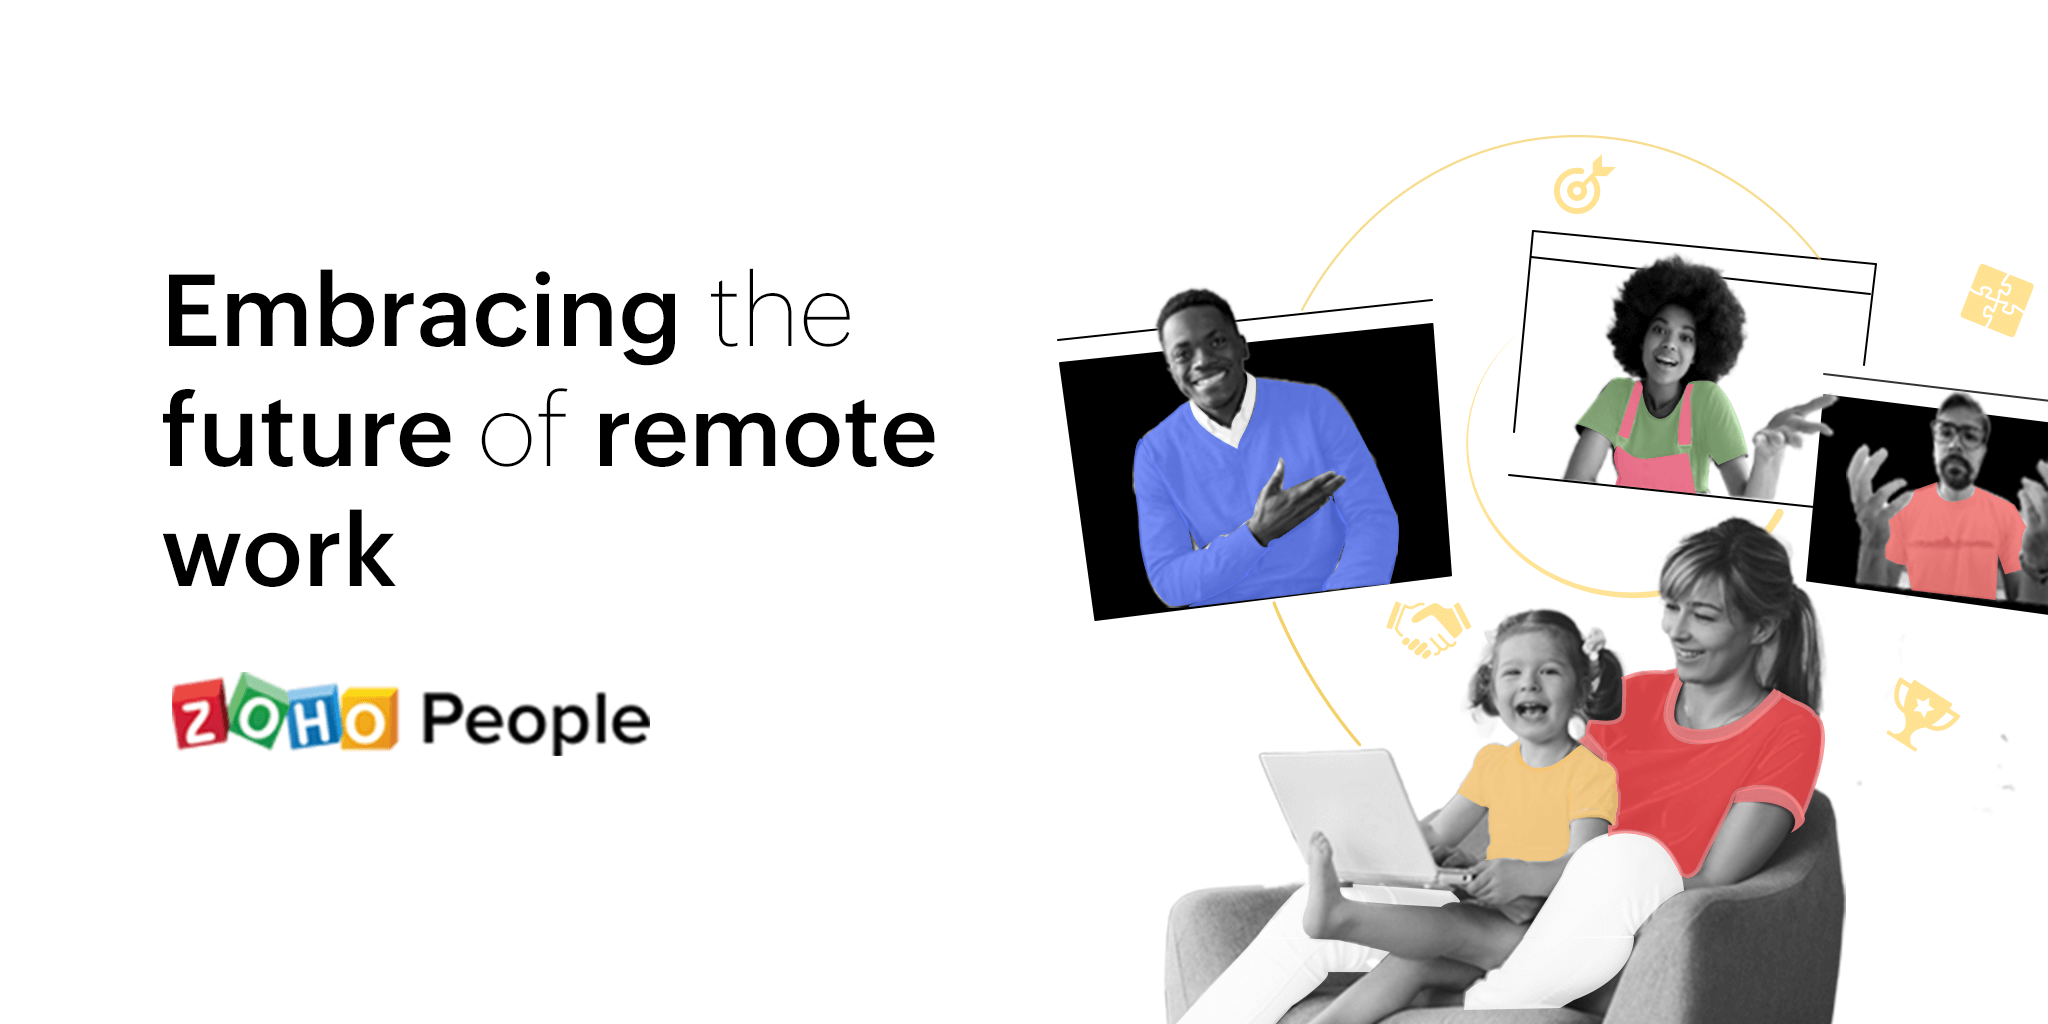 Embracing long-term remote work in your organization